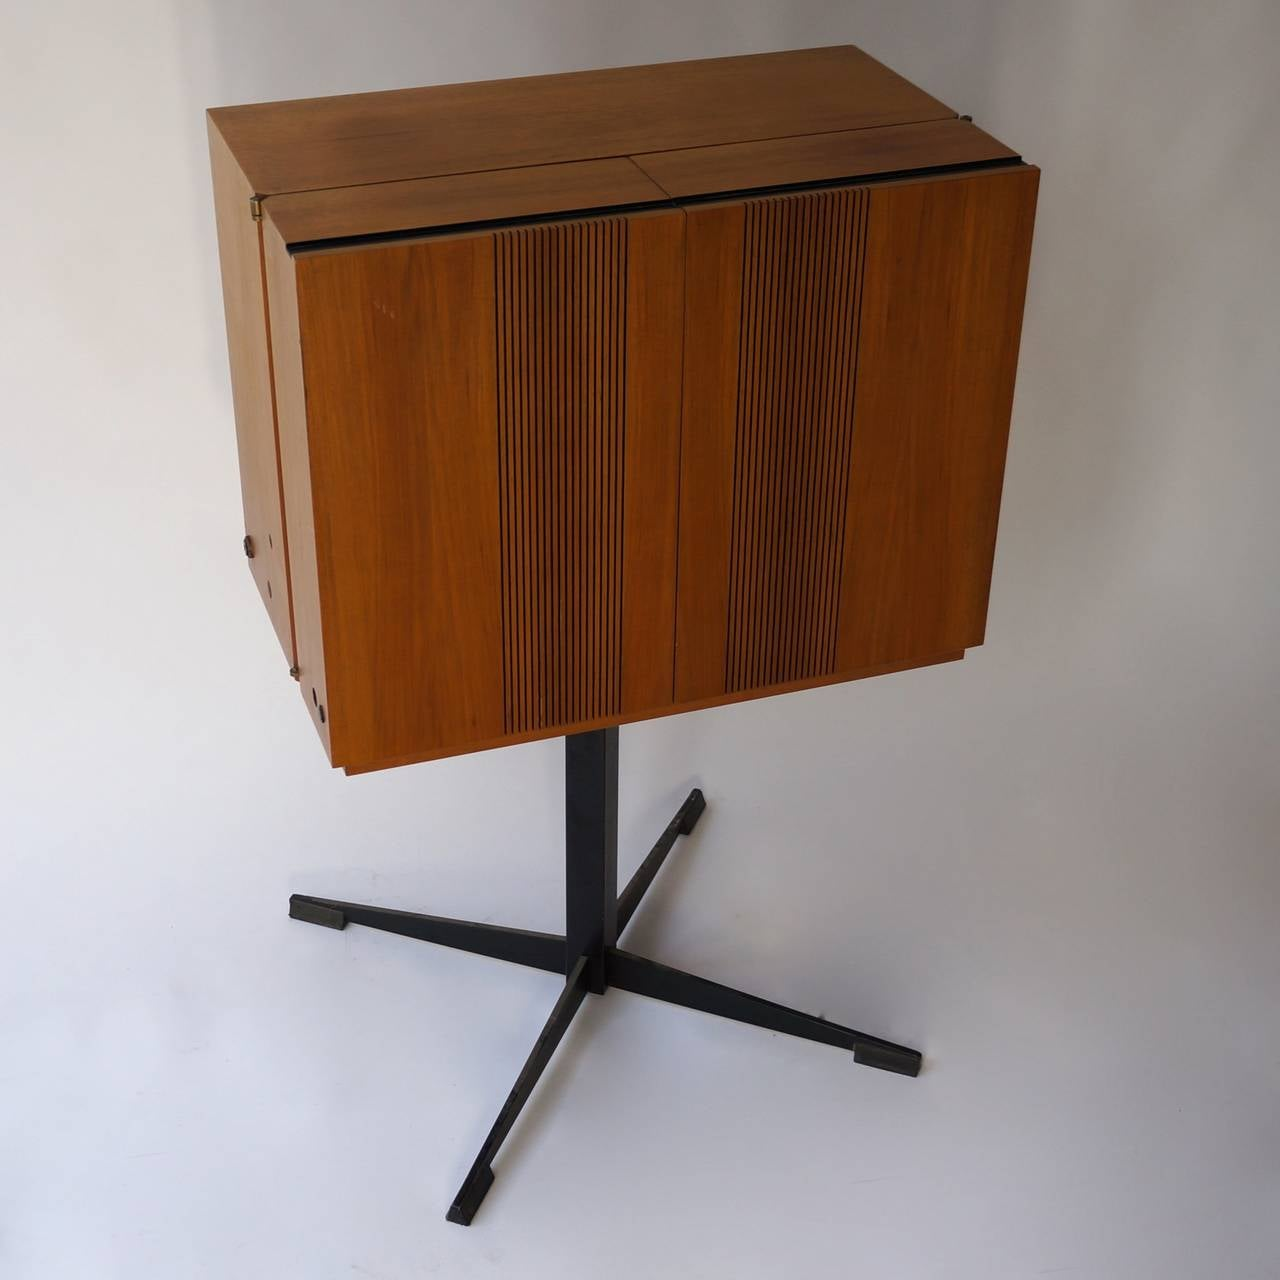 Dual Type Hs21 Record Player Germany 1966 At 1stdibs